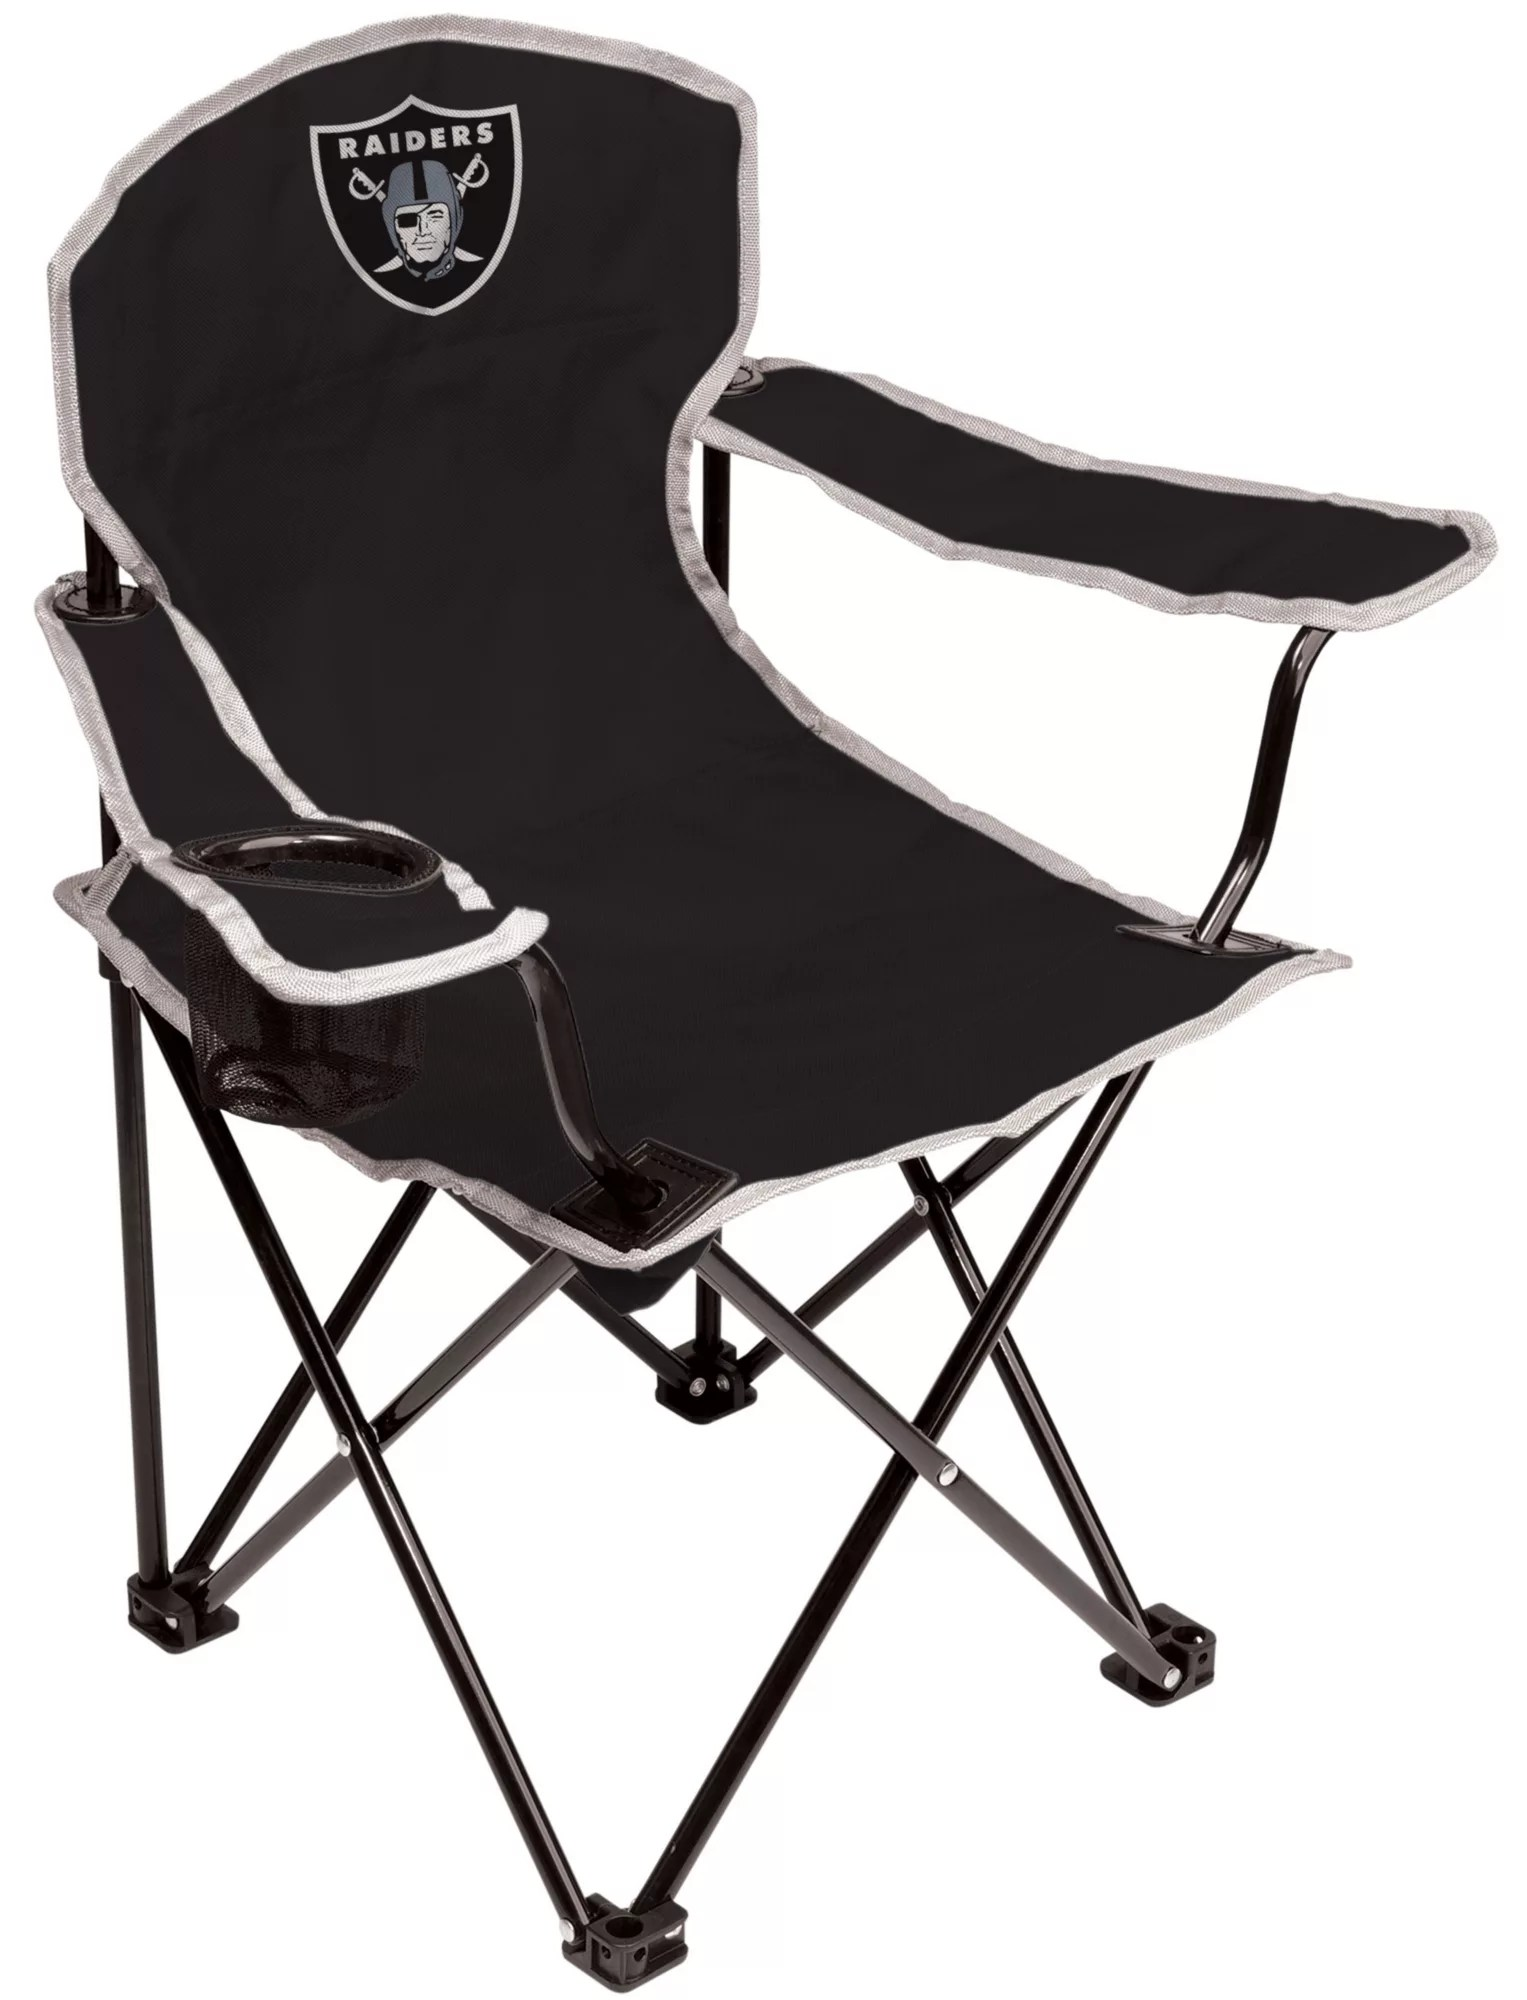 oakland raiders chair wedding covers canada rawlings youth dick s sporting goods noimagefound 1